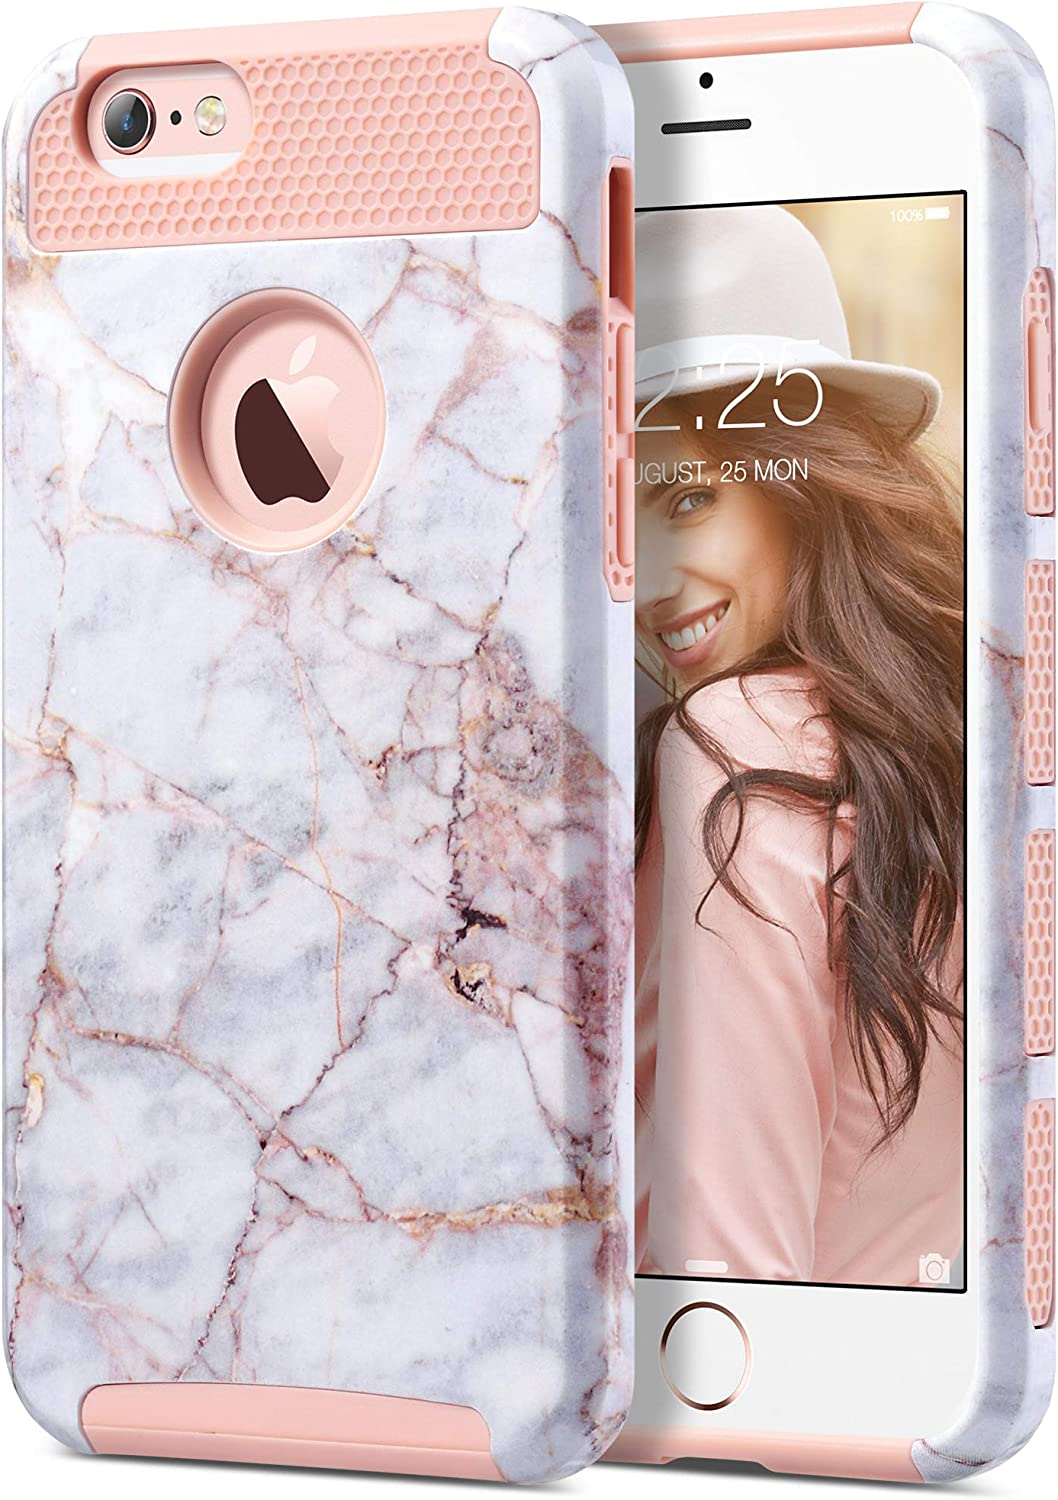 ULAK iPhone 6s Case, iPhone 6 Case, Colorful Series Slim Hybrid Dual Layer Scratch Resistant Back Cover Shock Absorbent TPU Bumper Case for Apple iPhone 6 6s 4.8 inch, Pink Marble